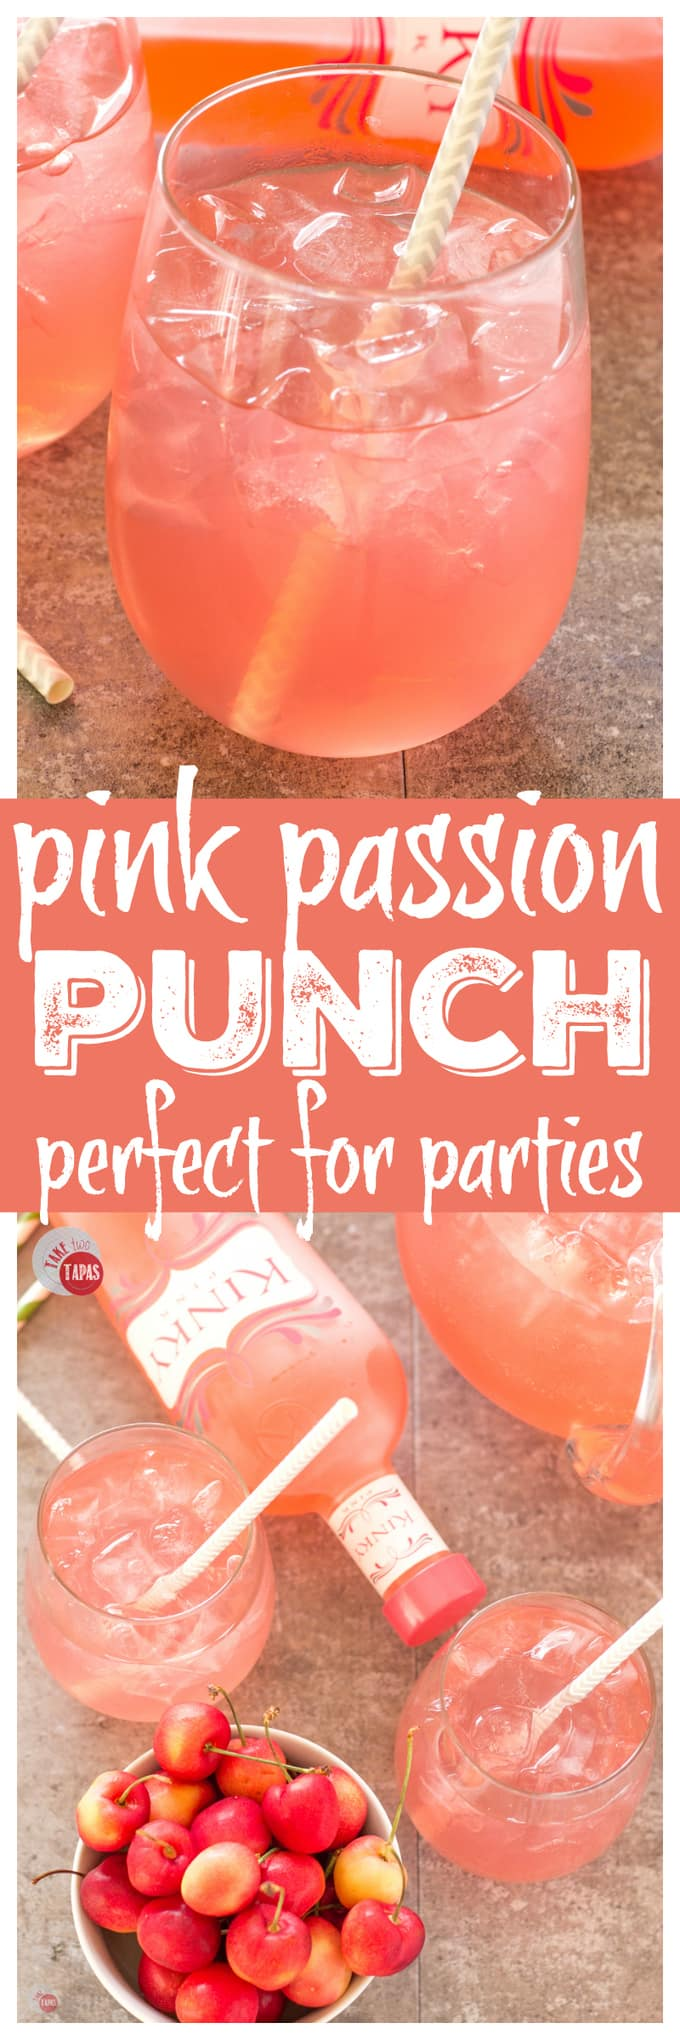 Pink Passion Party Punch for your party | Take Two Tapas | Pink Passion Party Punch with a threesome of flavors | Take Two Tapas | #partypunchrecipe #pricklypearrecipe #largebatchpunch #bloodorangesoda #PartyRecipes